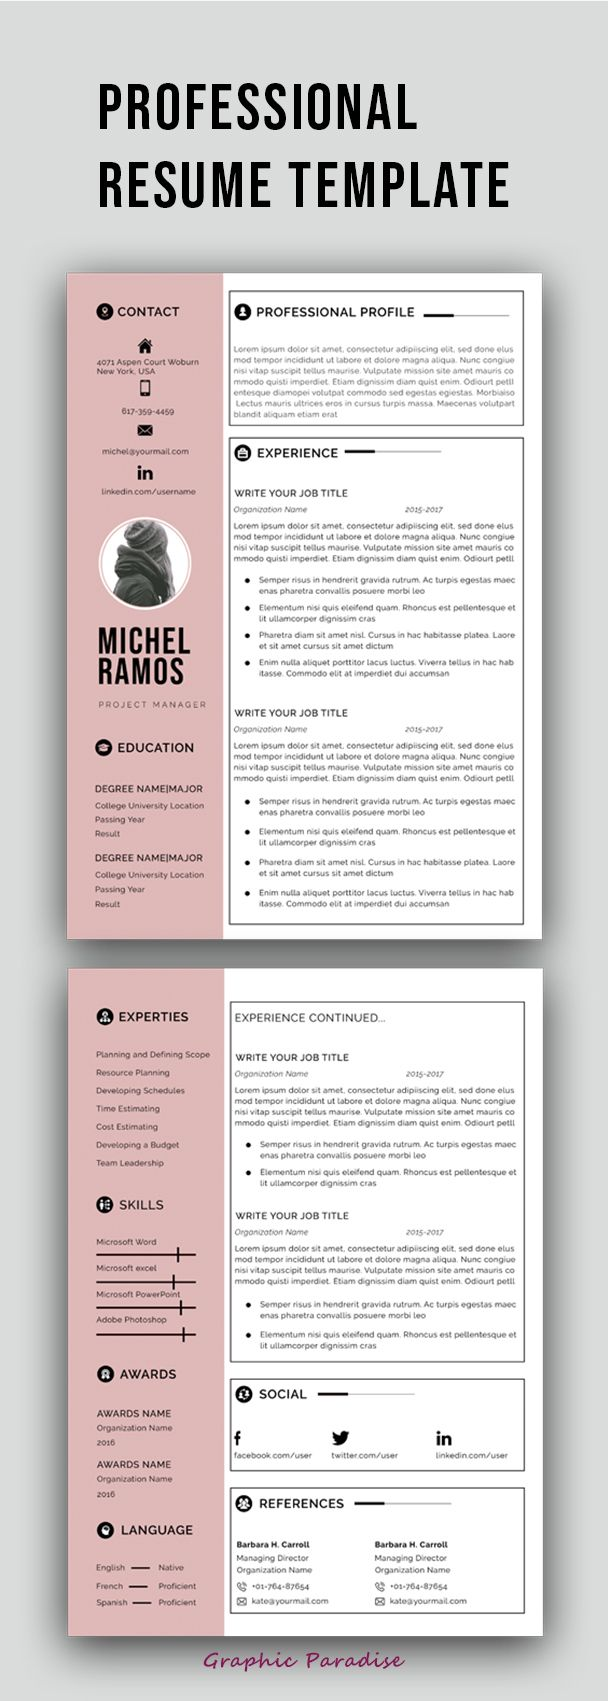 Format Letter Of Reference Stunning Professional Ms Word Resume Template Instant Download Matching .